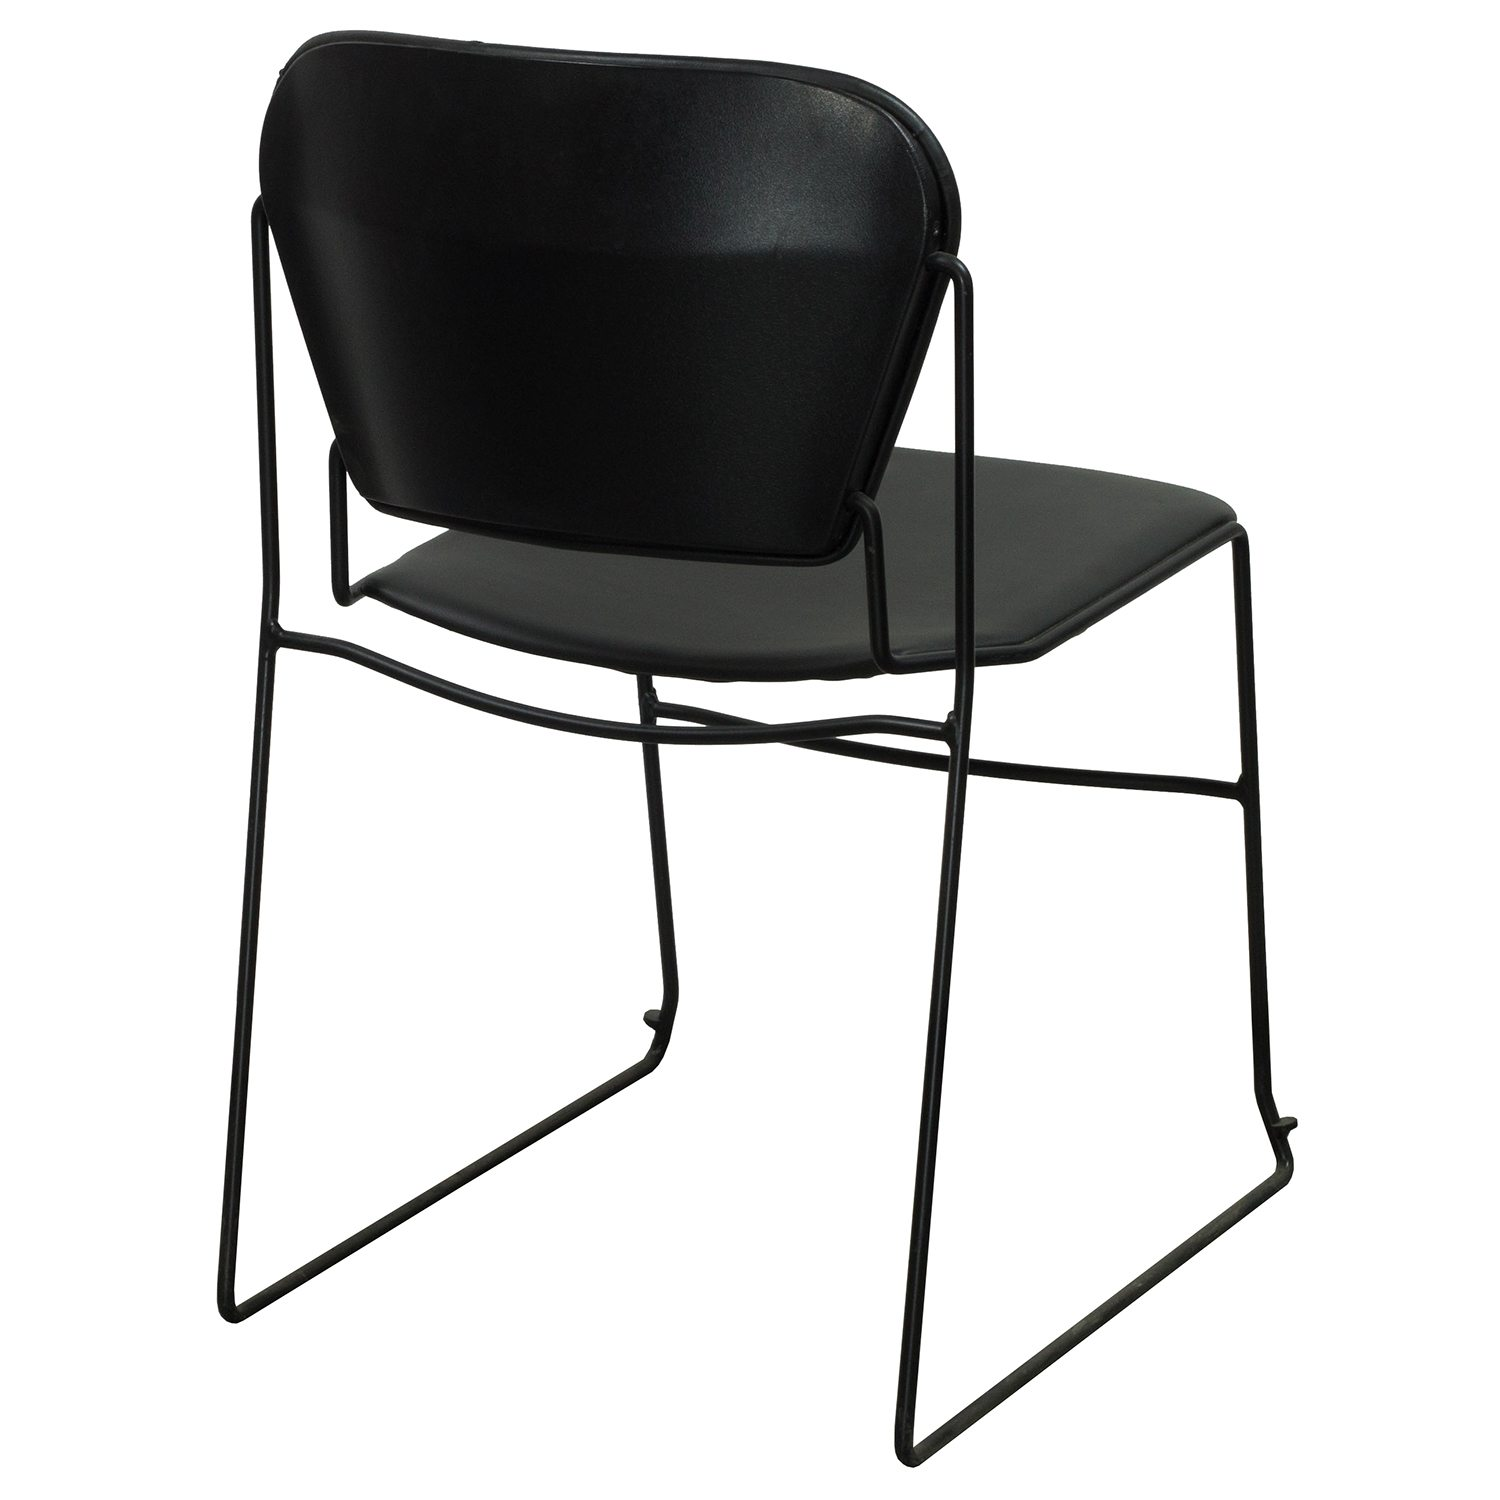 Ki Chairs Ki Perry Used Leather Stack Chair Black National Office